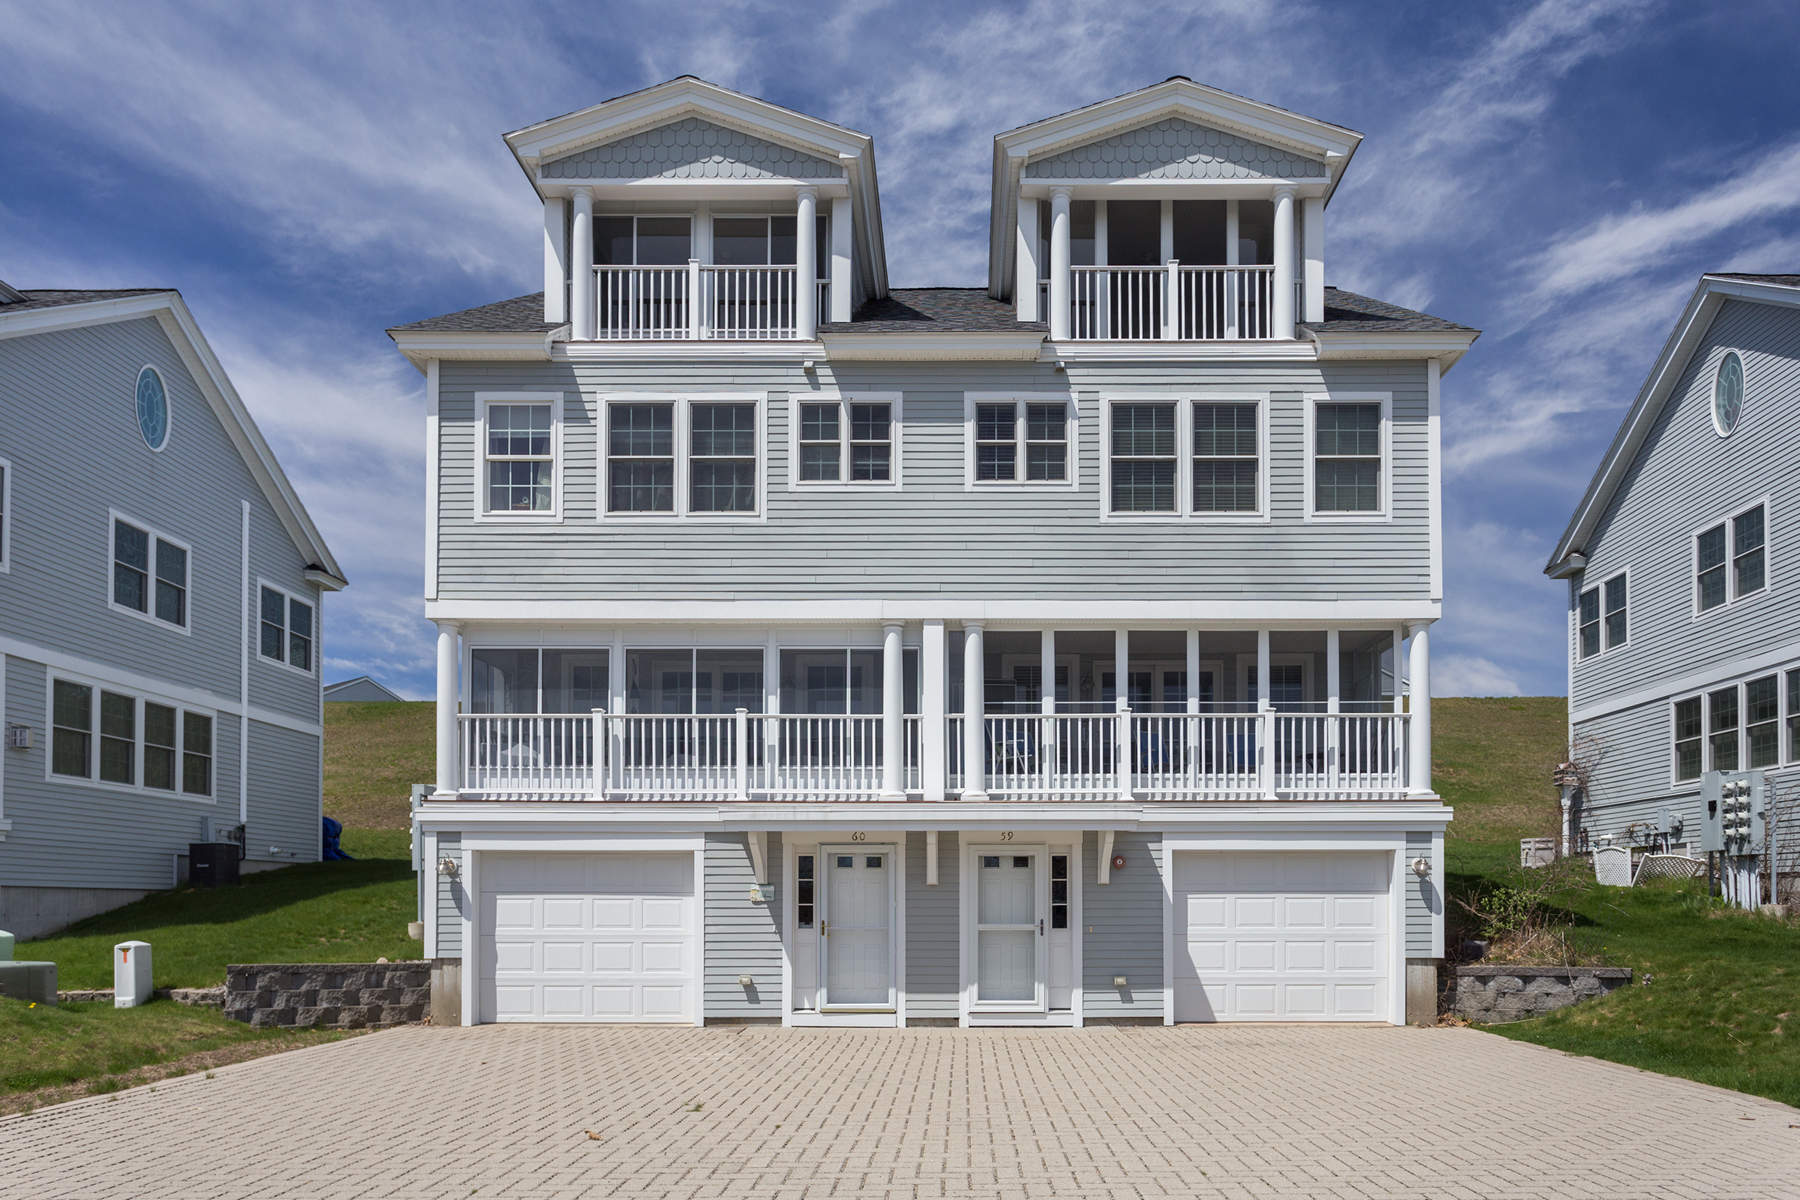 Condominium for Sale at Luxury Amenities & Panoramic Views 1413 Post Road #59 Wells, Maine 04090 United States